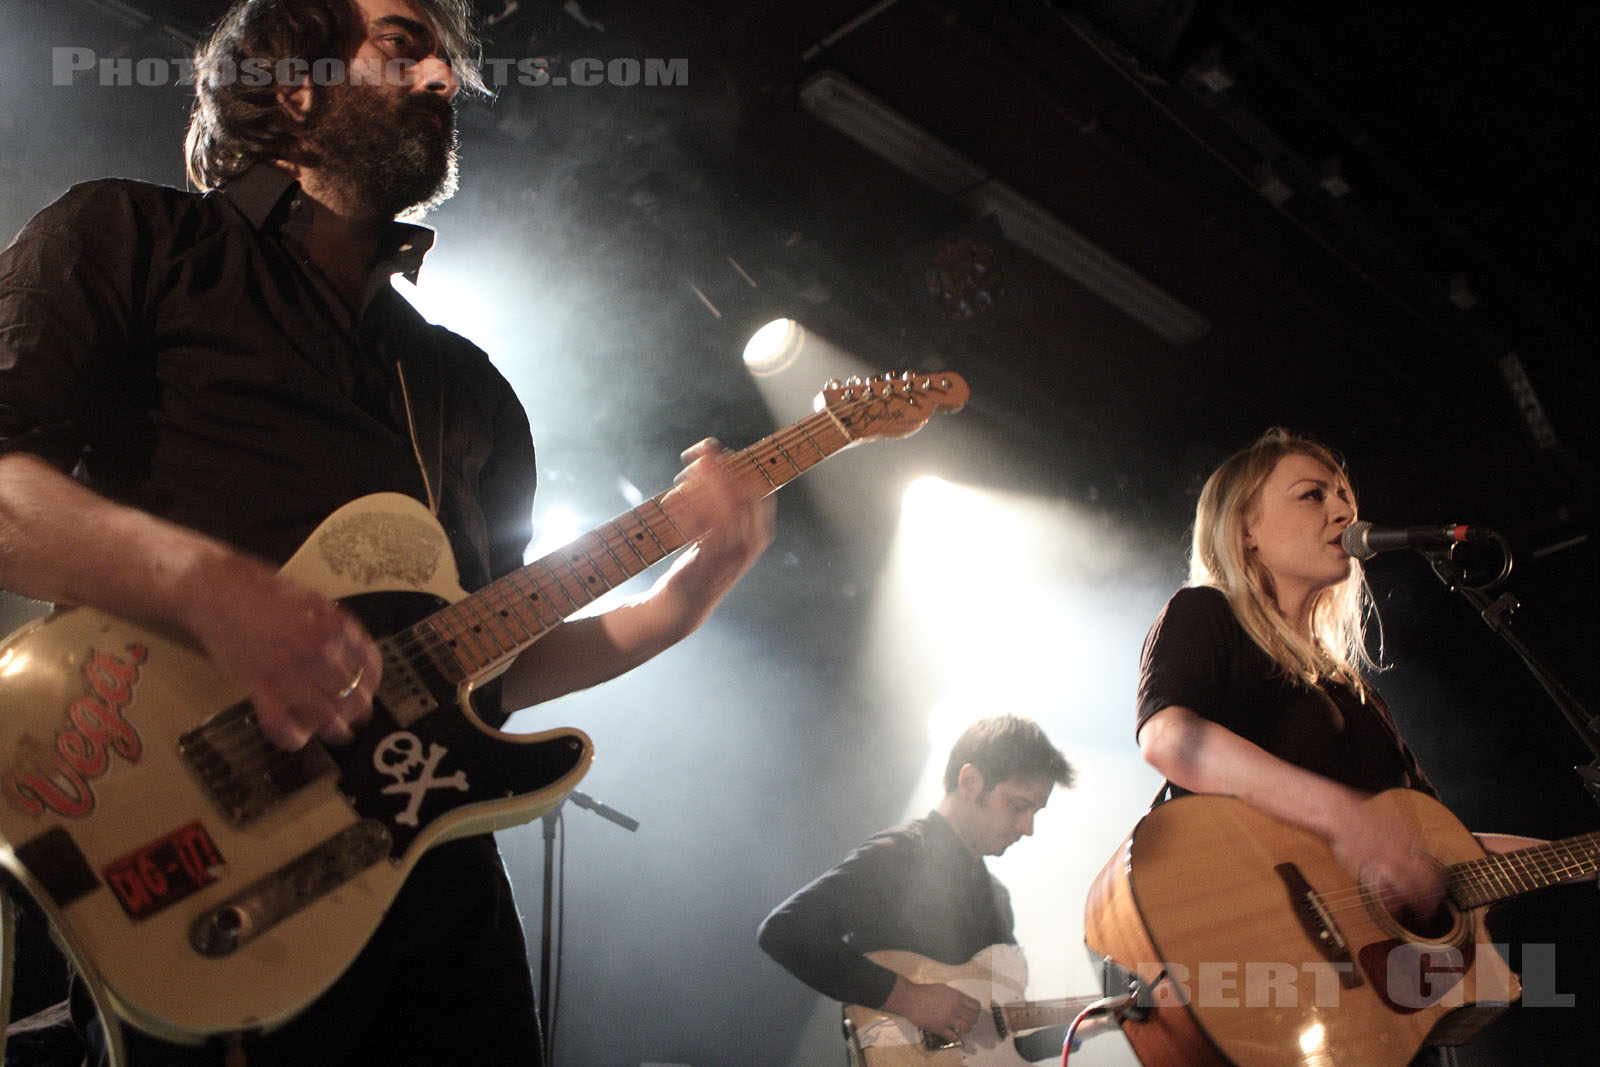 THE LIMINANAS - 2014-02-11 - PARIS - La Maroquinerie